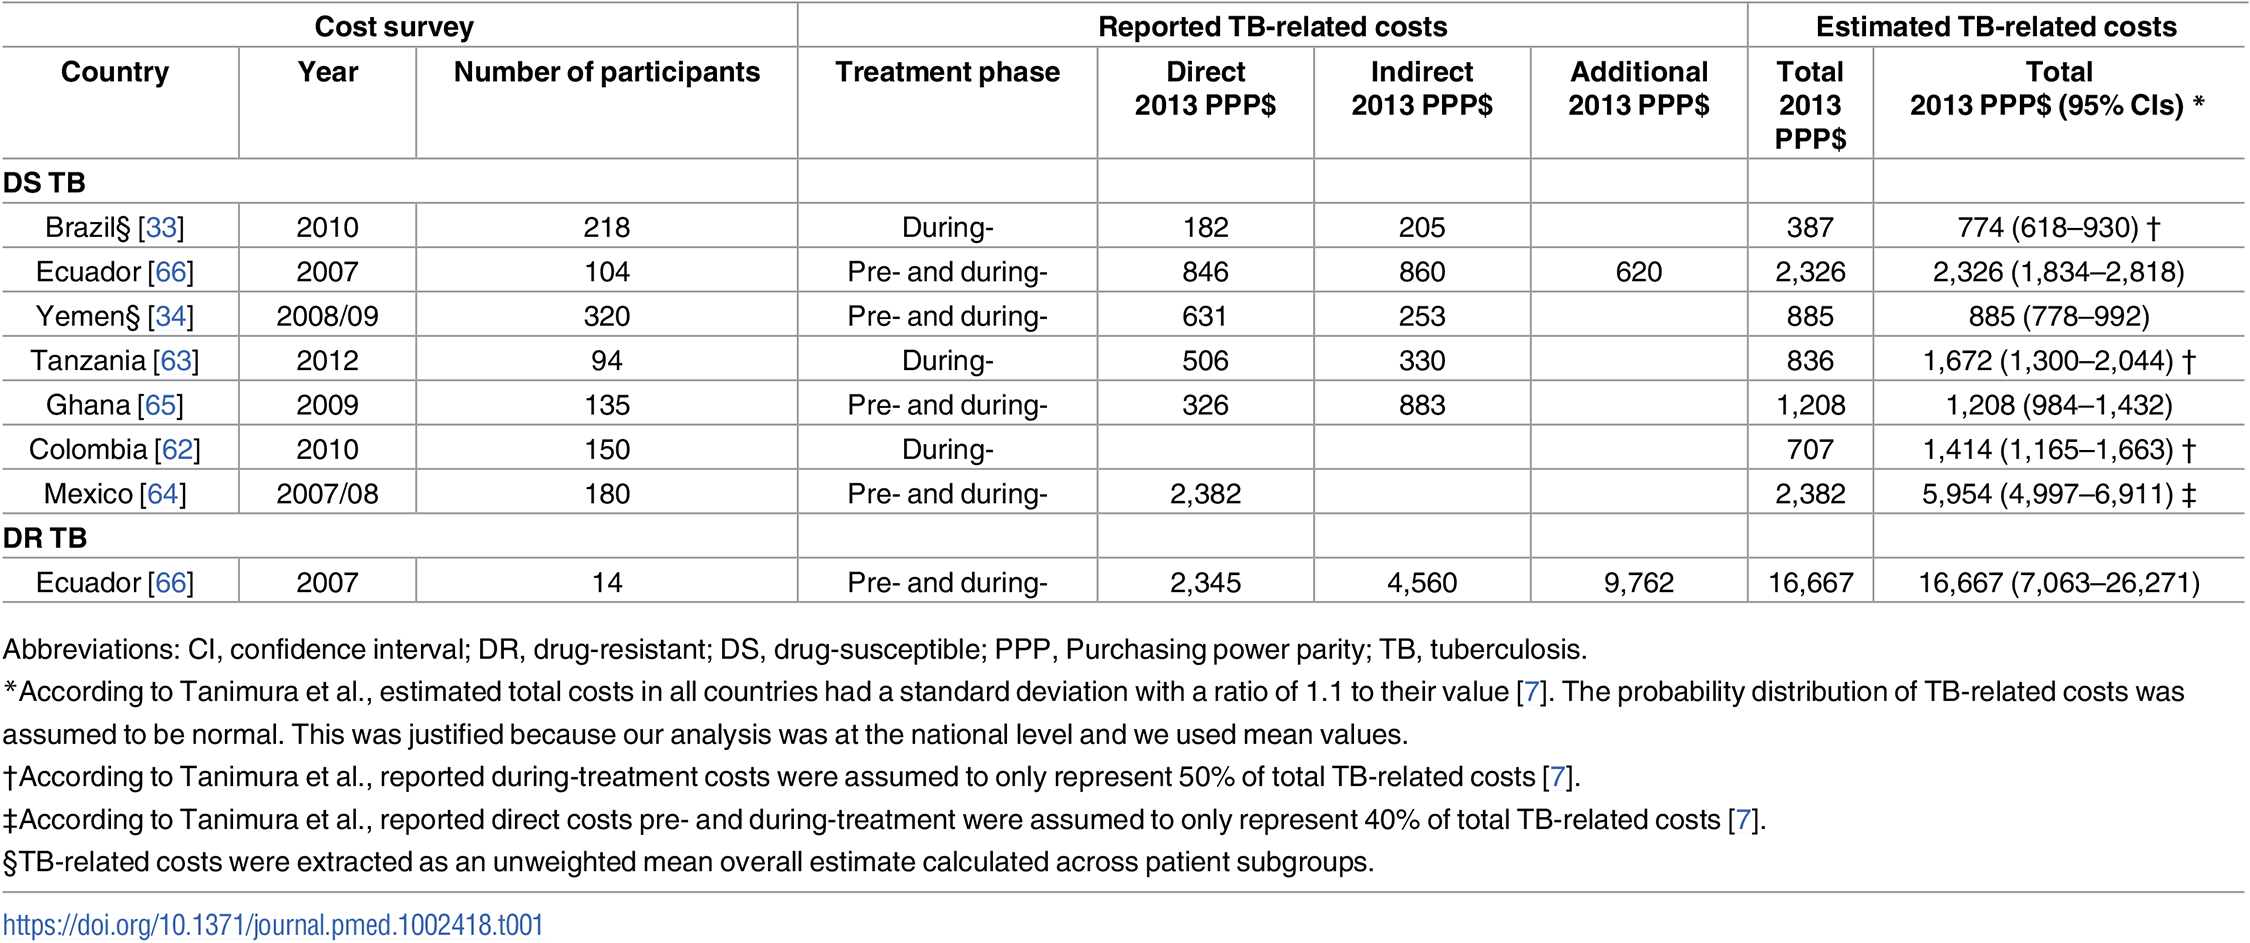 Summary of TB-related cost surveys included in the study.